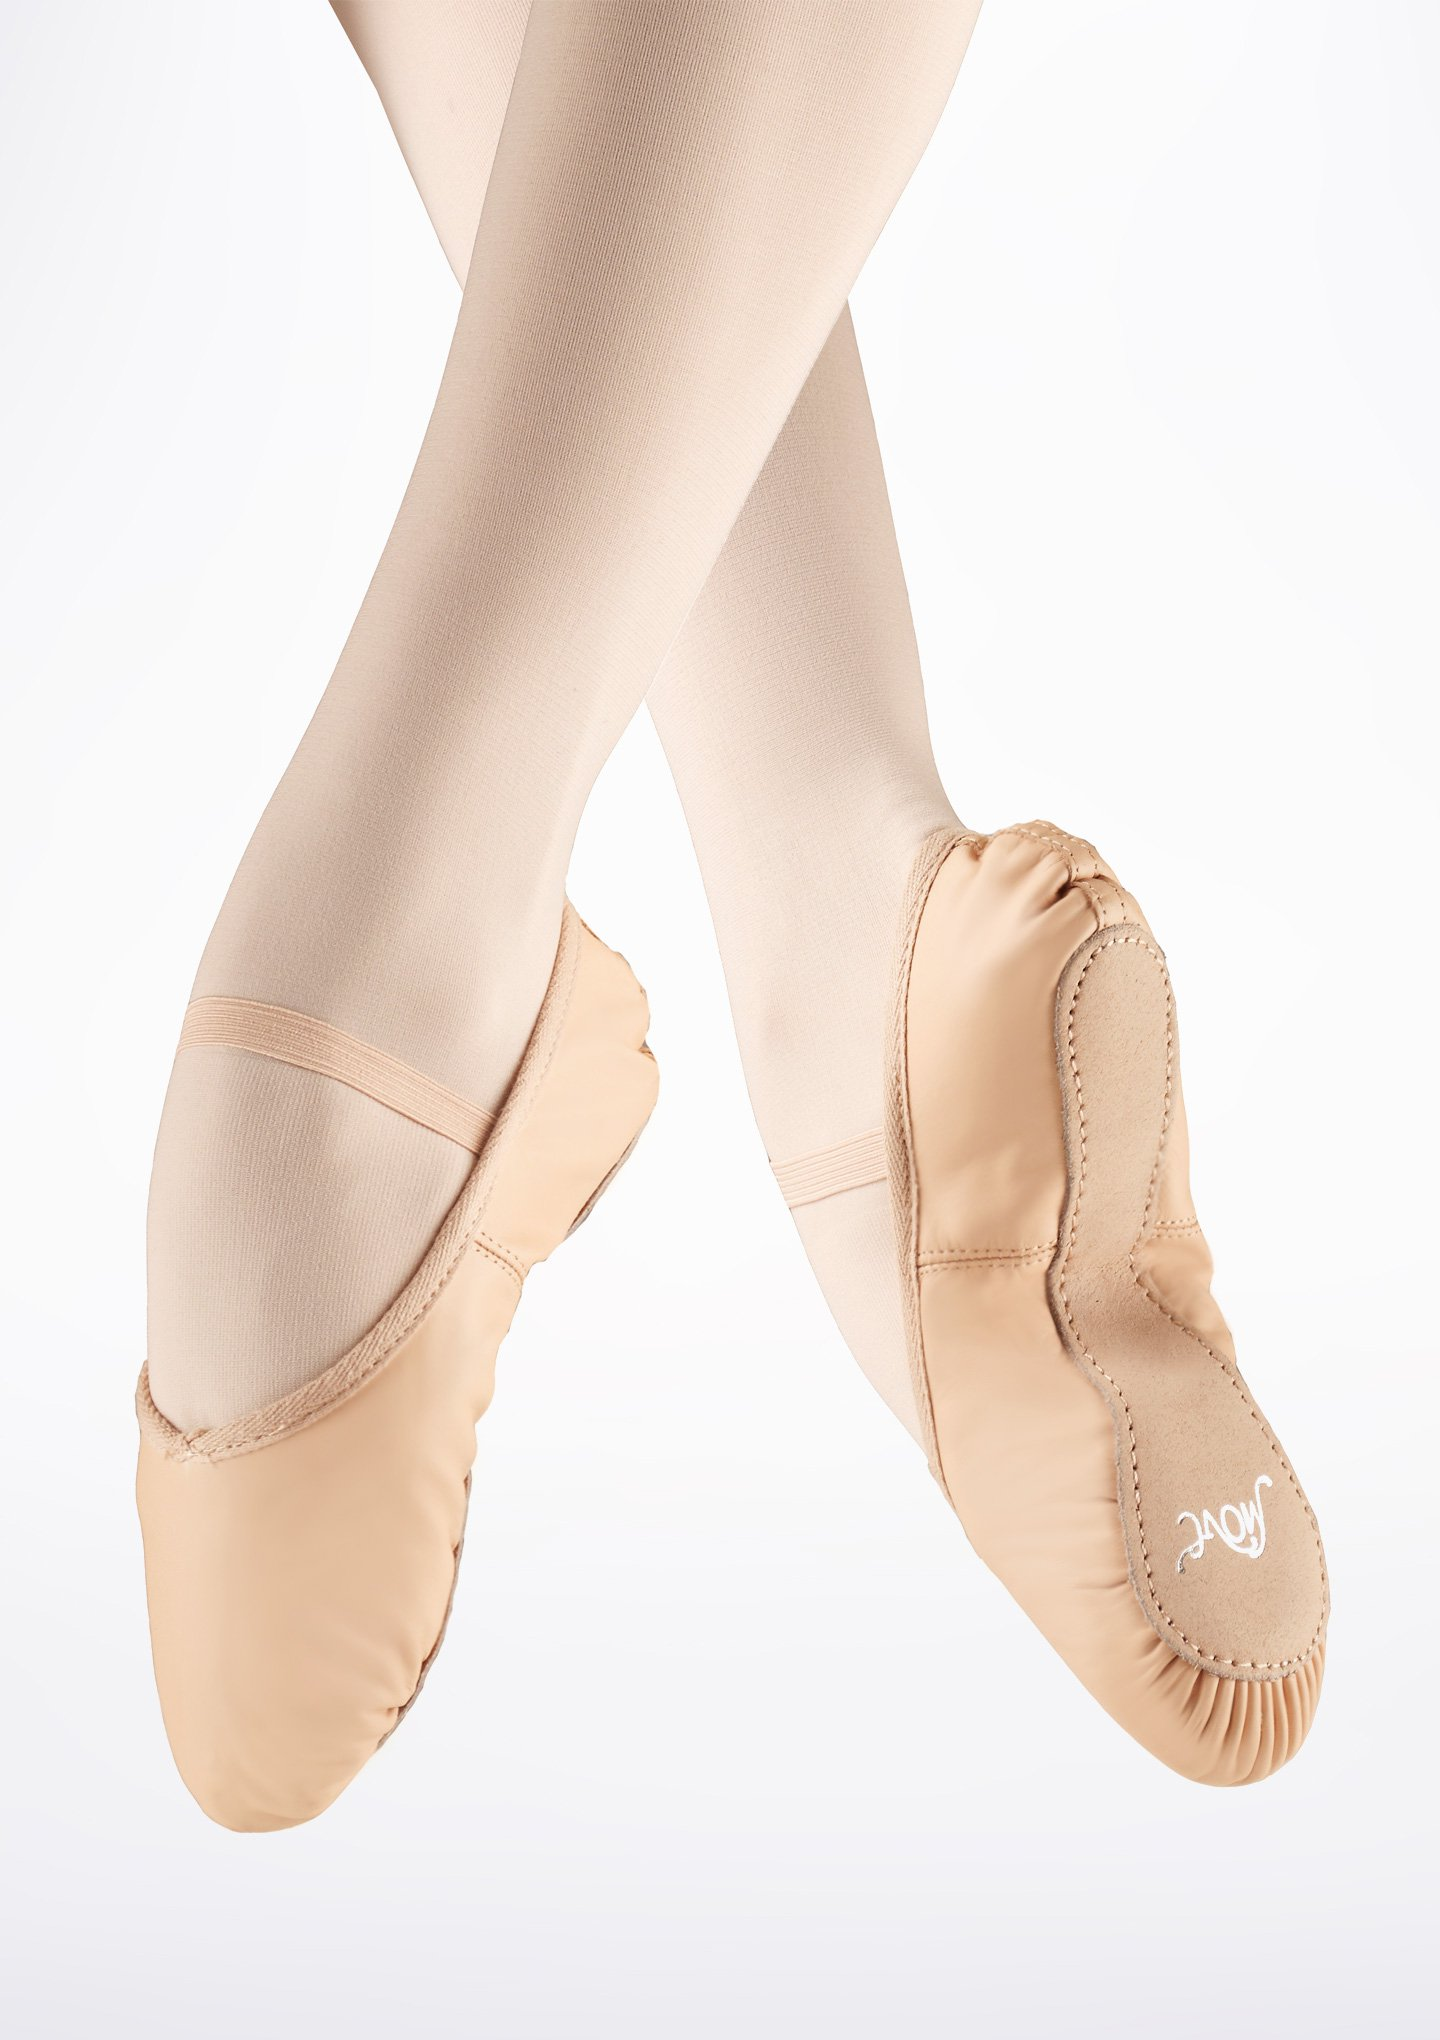 ballet shoes move full sole leather ballet shoe - pink £6.75 NFSJXSE